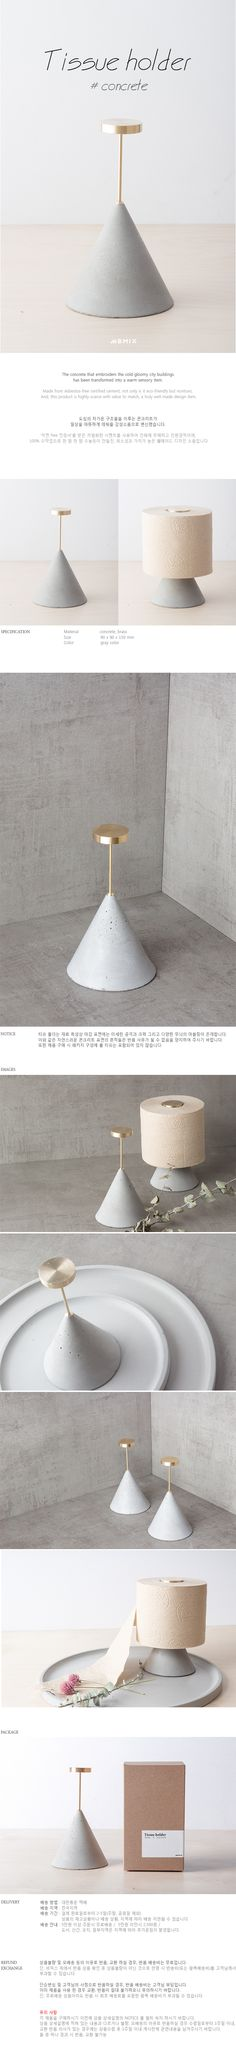 텐바이텐 10X10 : Concrete Tissue Holder 오피스 테이블웨어 예시 Concrete Furniture, Furniture Legs, Furniture Design, Concrete Crafts, Concrete Art, Lamp Design, Lighting Design, Galaxy Projects, Store Fixtures